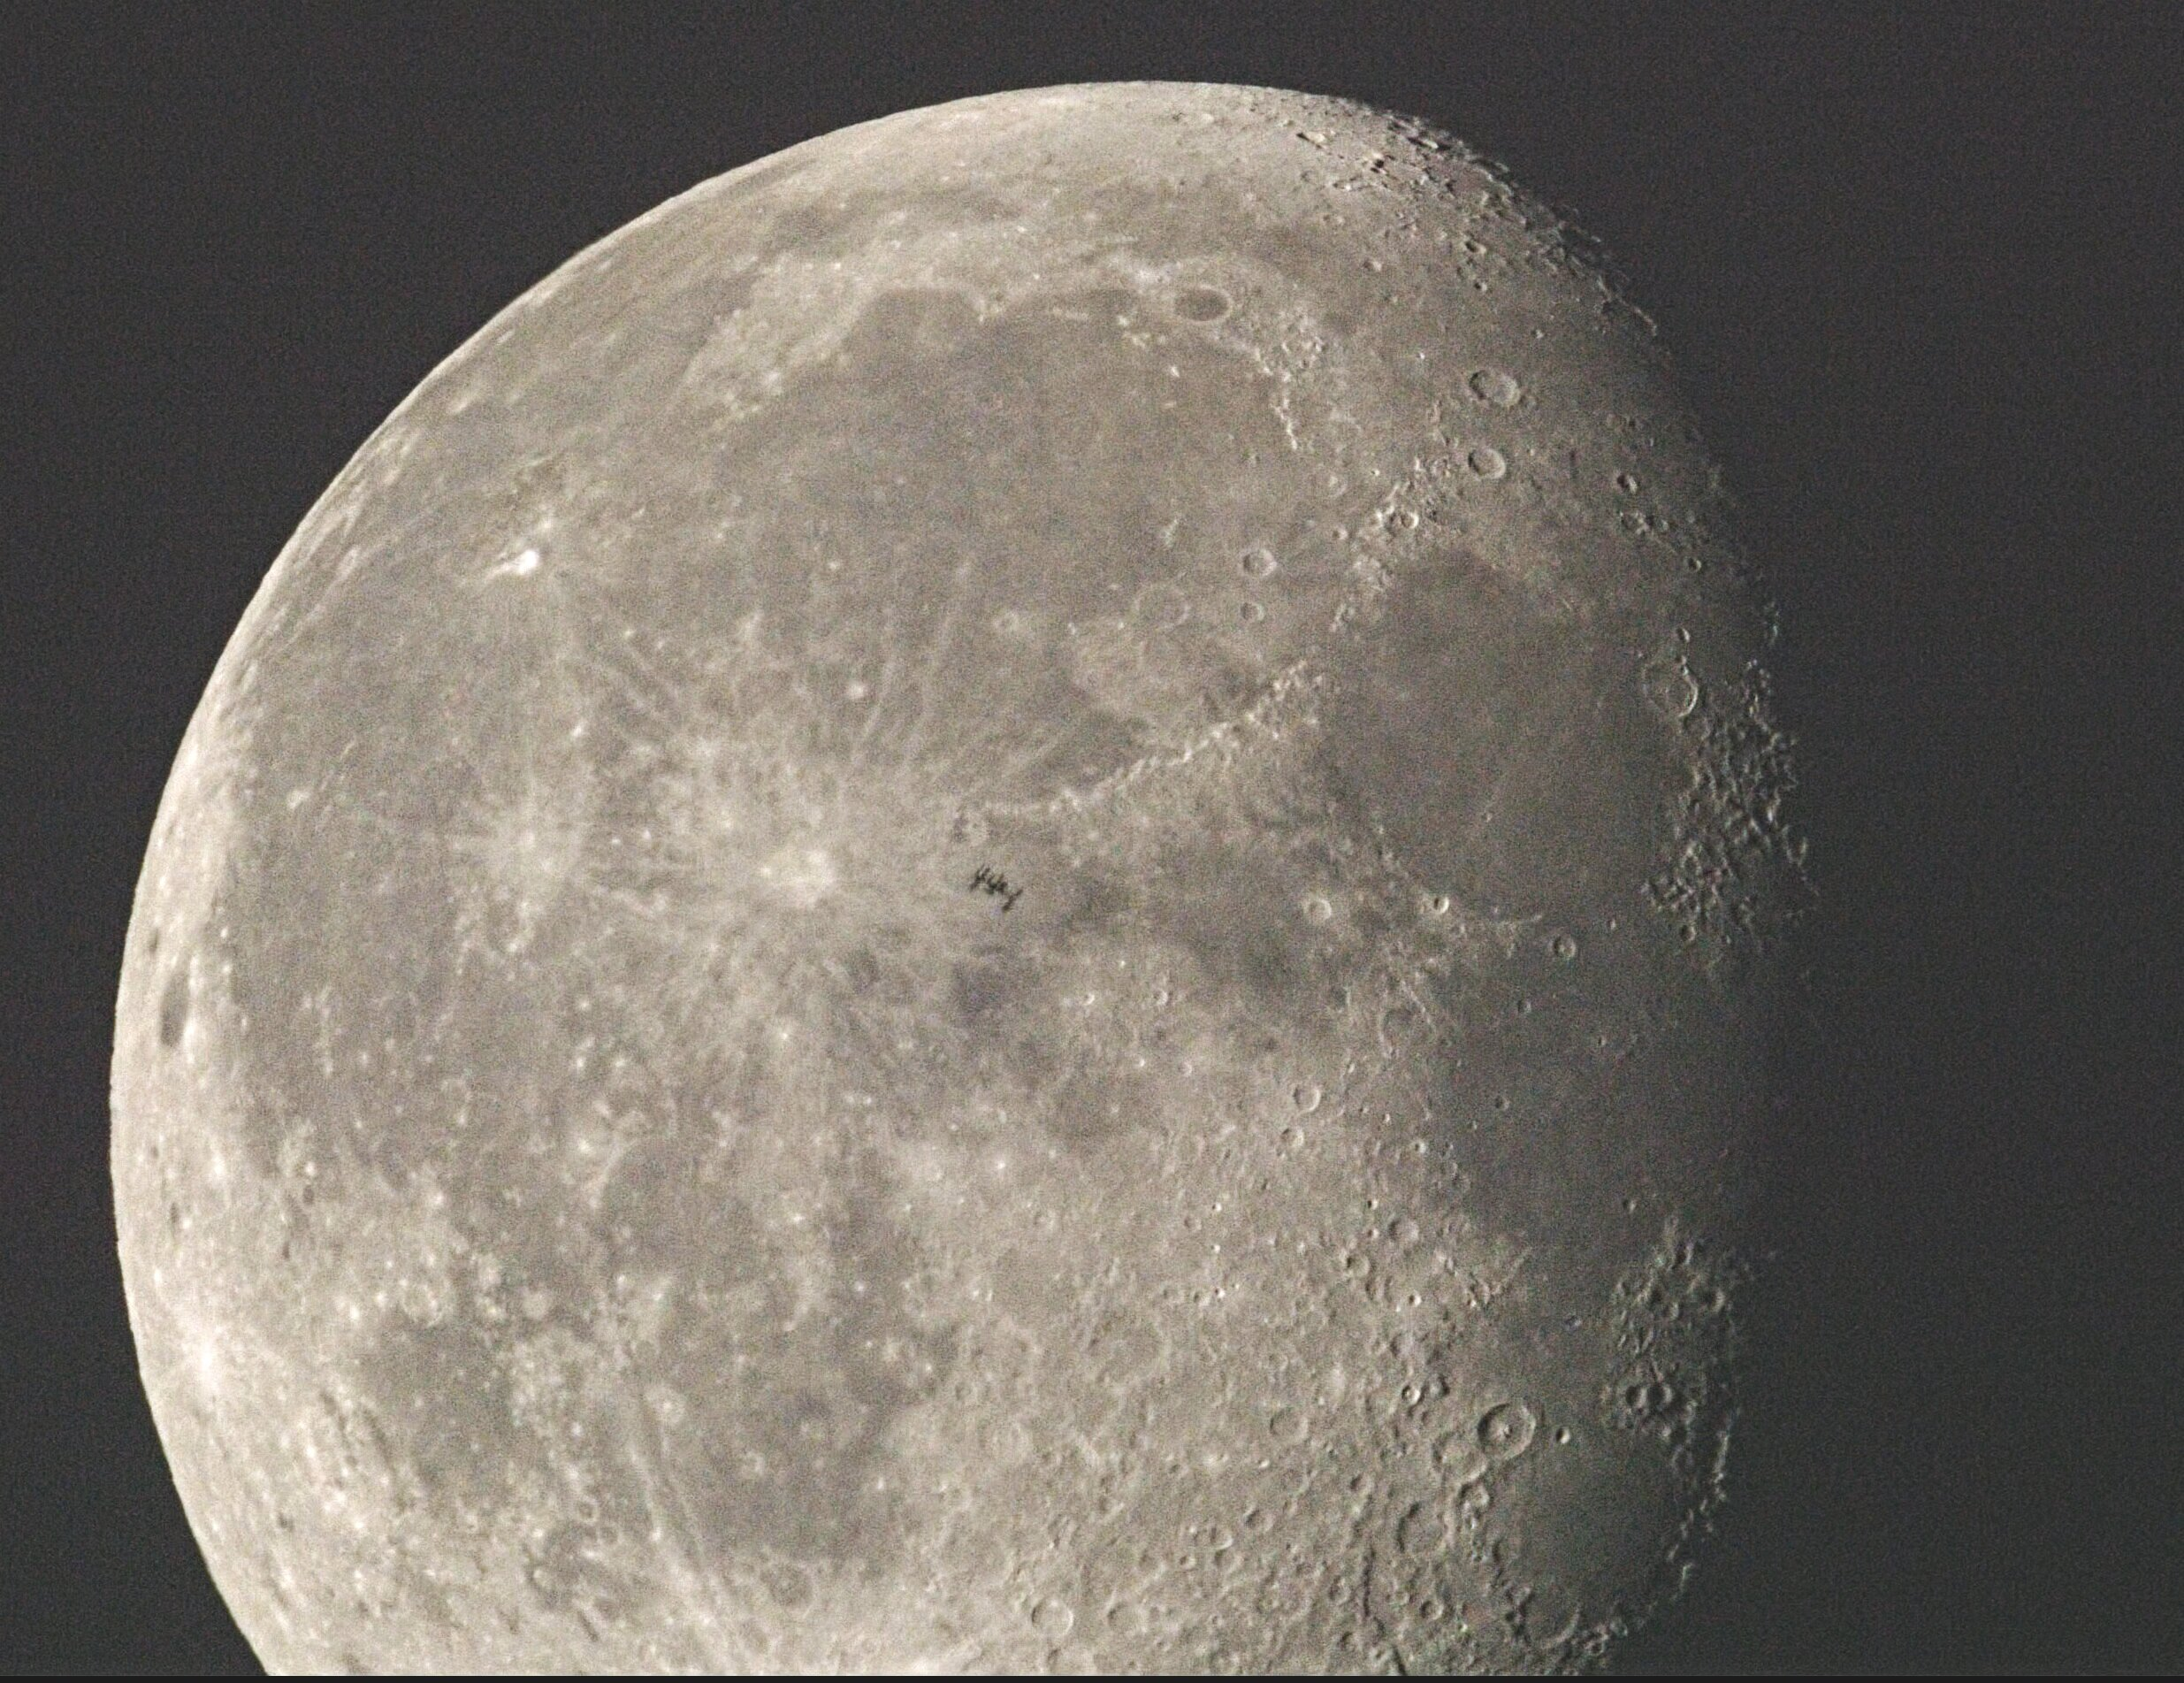 International Space Station in front of the moon, just to the right of the Copernicus Crater. If you are going to photograph a satellite crossing the moon, or even more challenging, one of the planets, you won't need any special filtration.